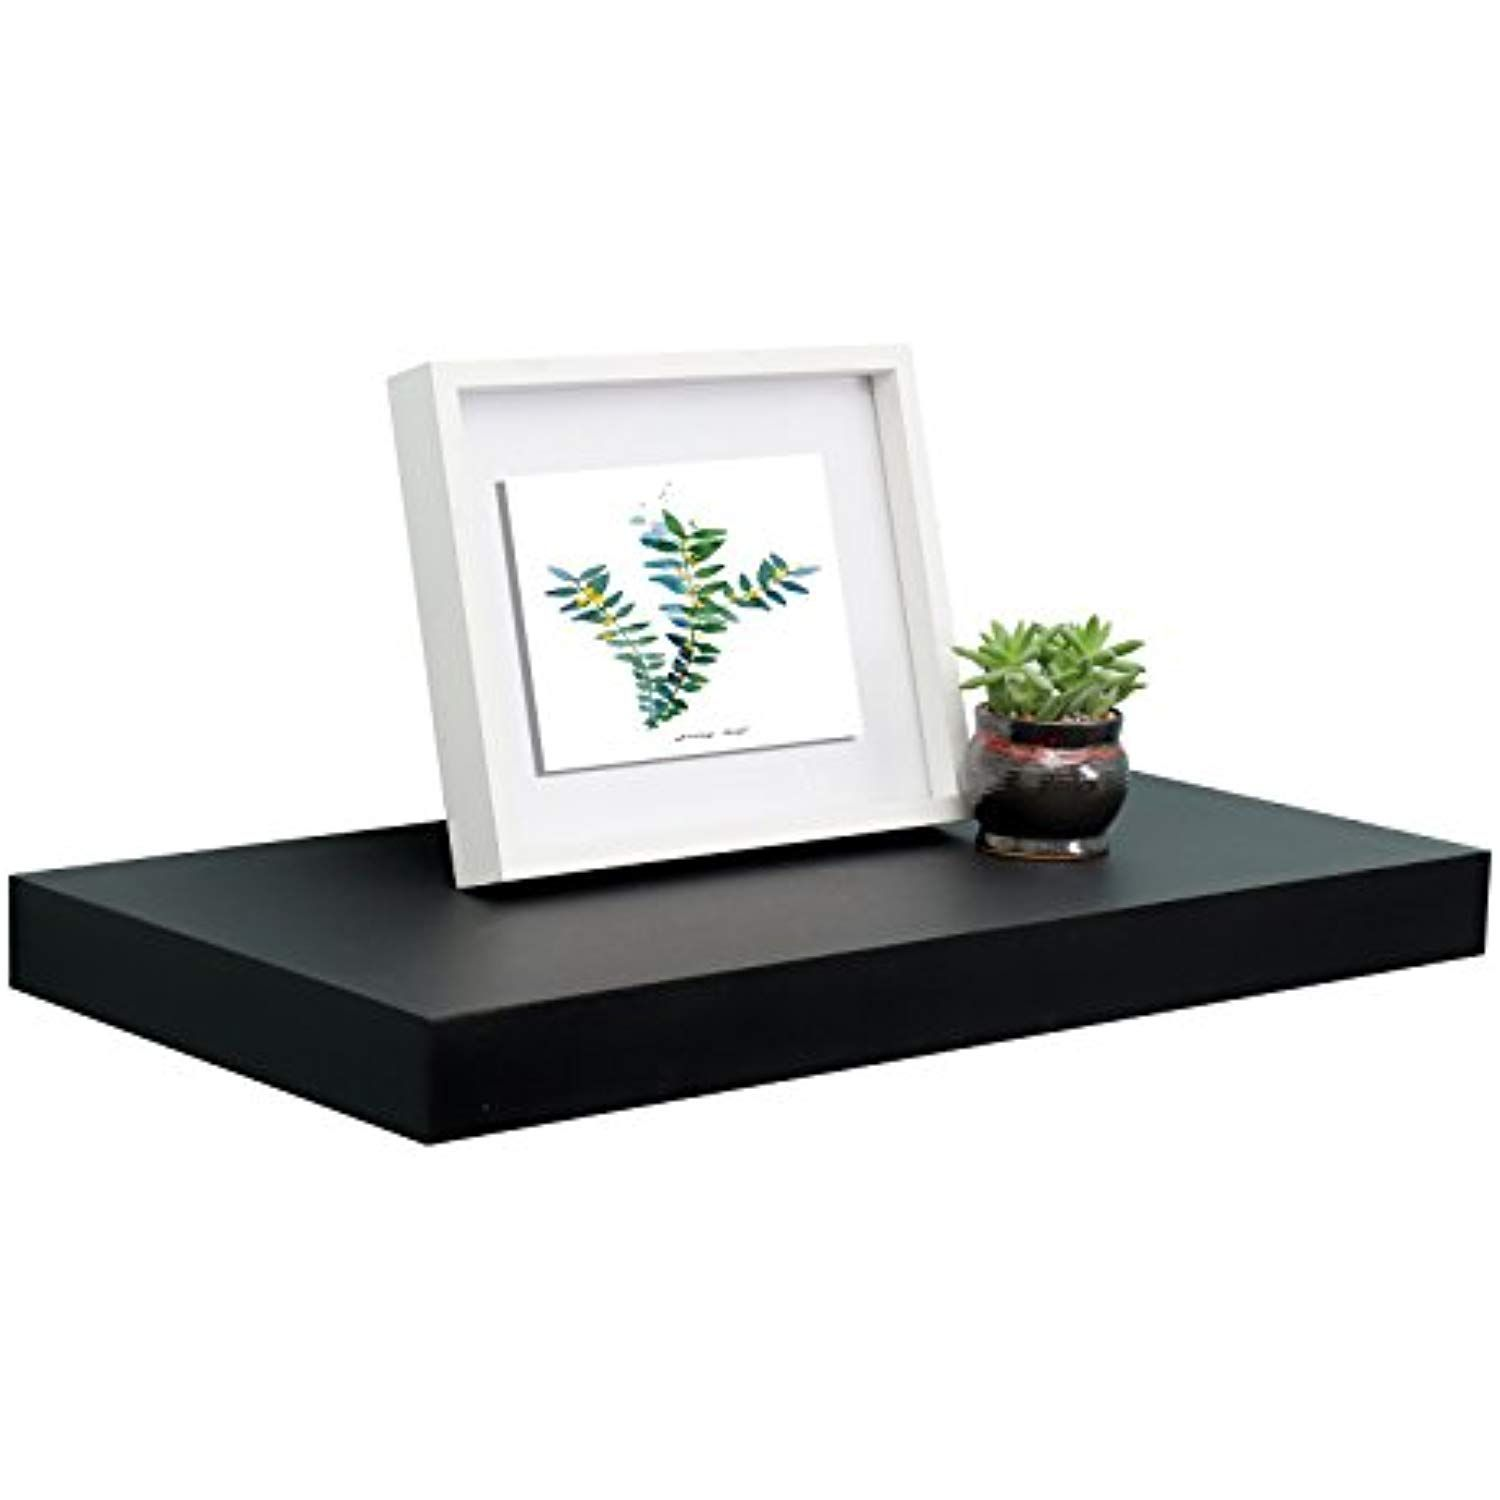 Welland 12 Depth Floating Wall Shelf Black Floating Shelf Display Floating Shelf 24 L X 12 D In 2020 Floating Wall Shelves Black Floating Shelves Floating Shelves